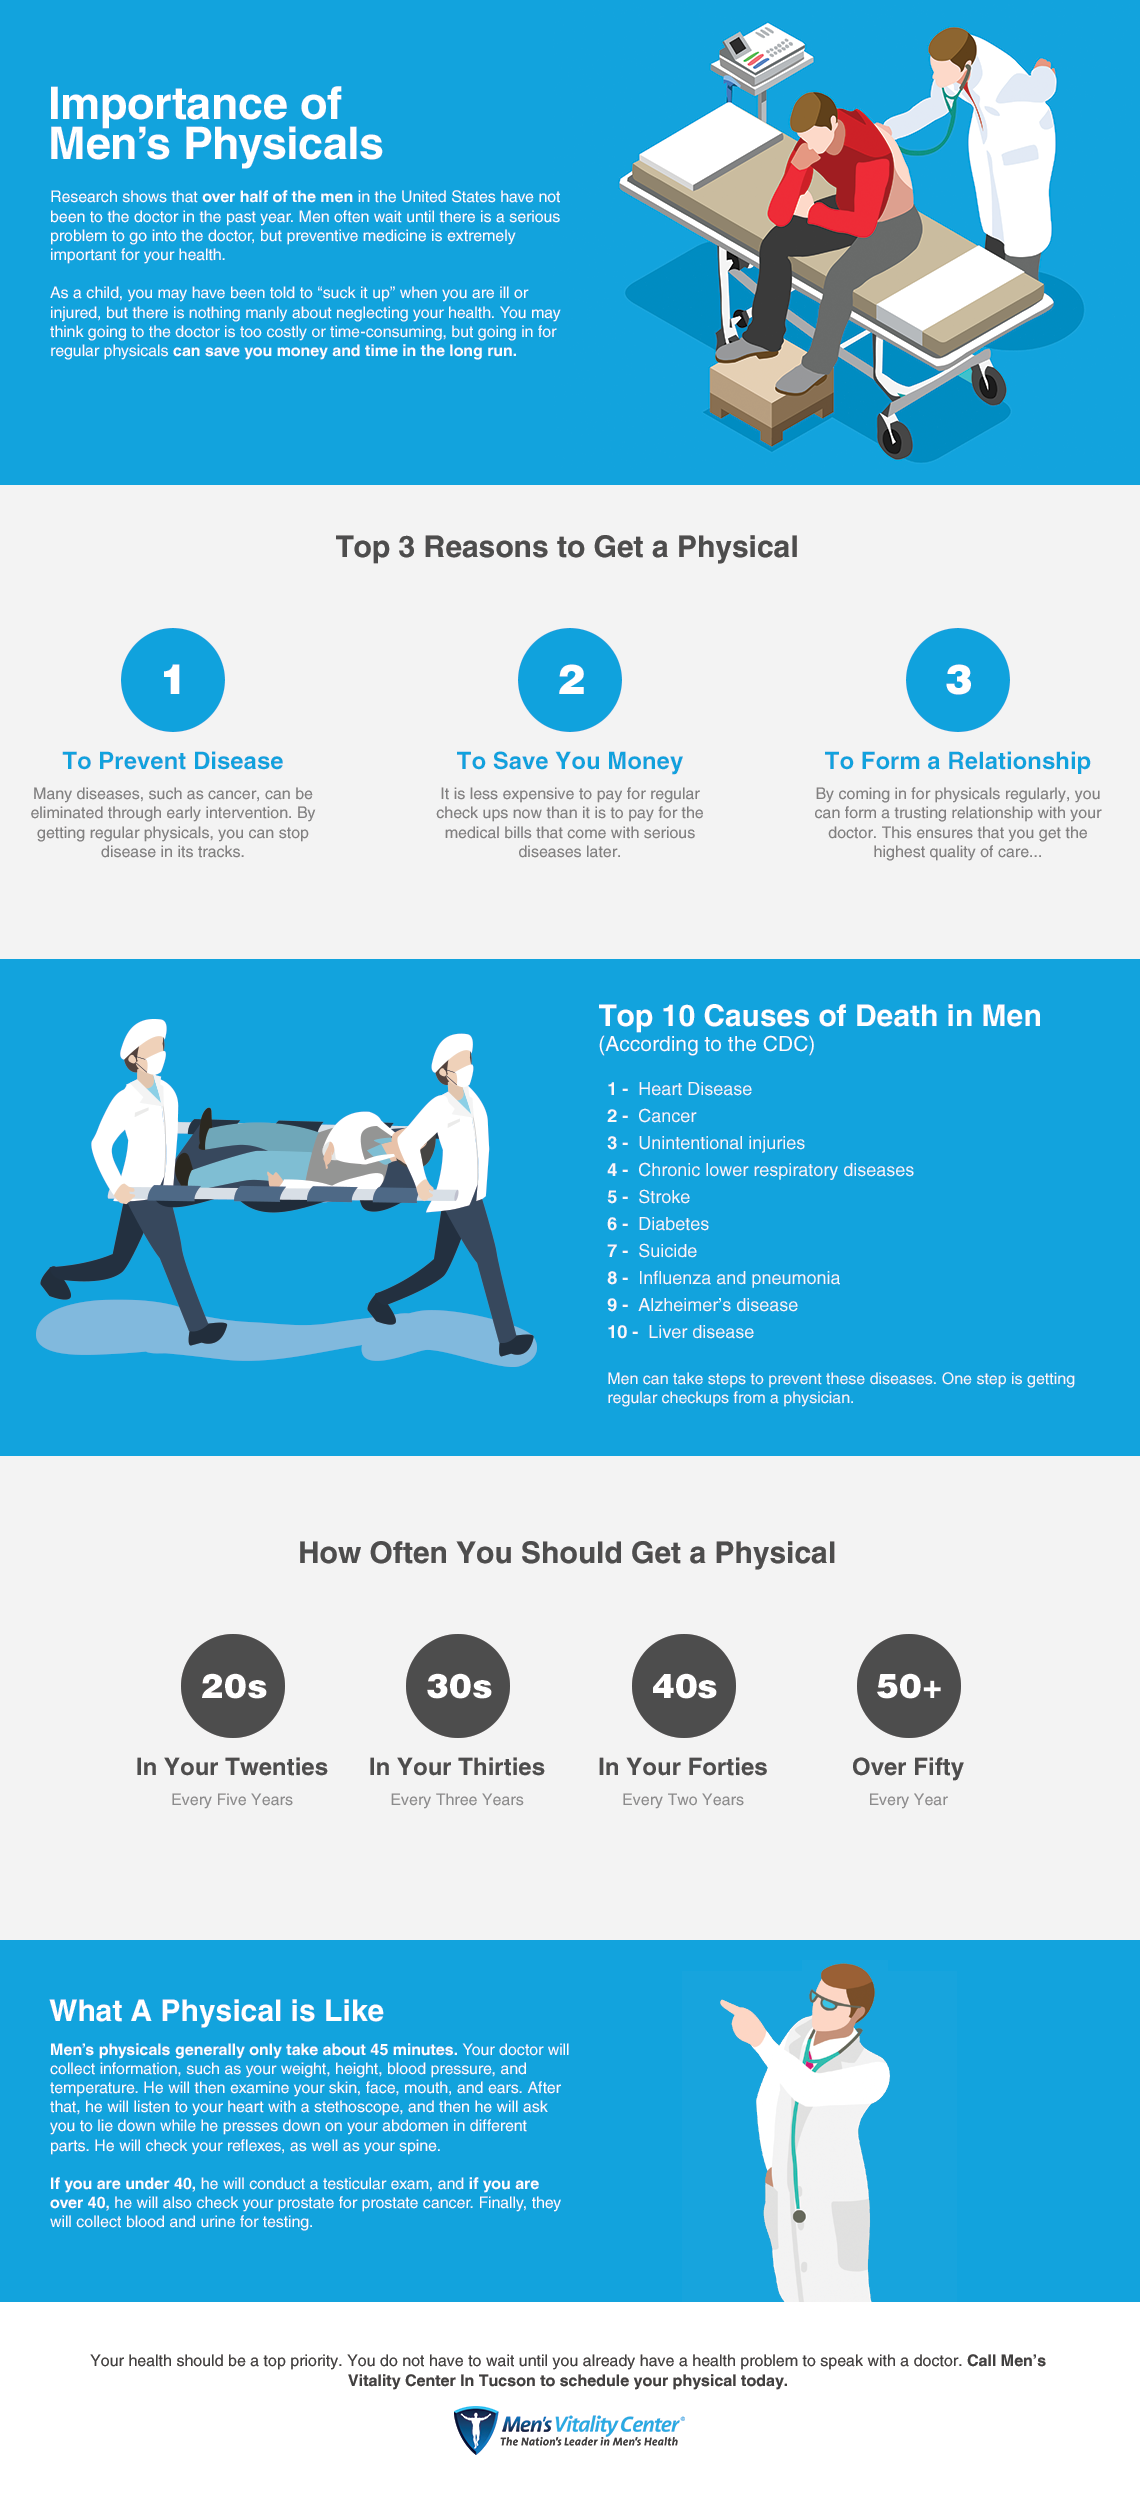 Men's Vitality Center Infographic On The Importance Of Men's Physicals